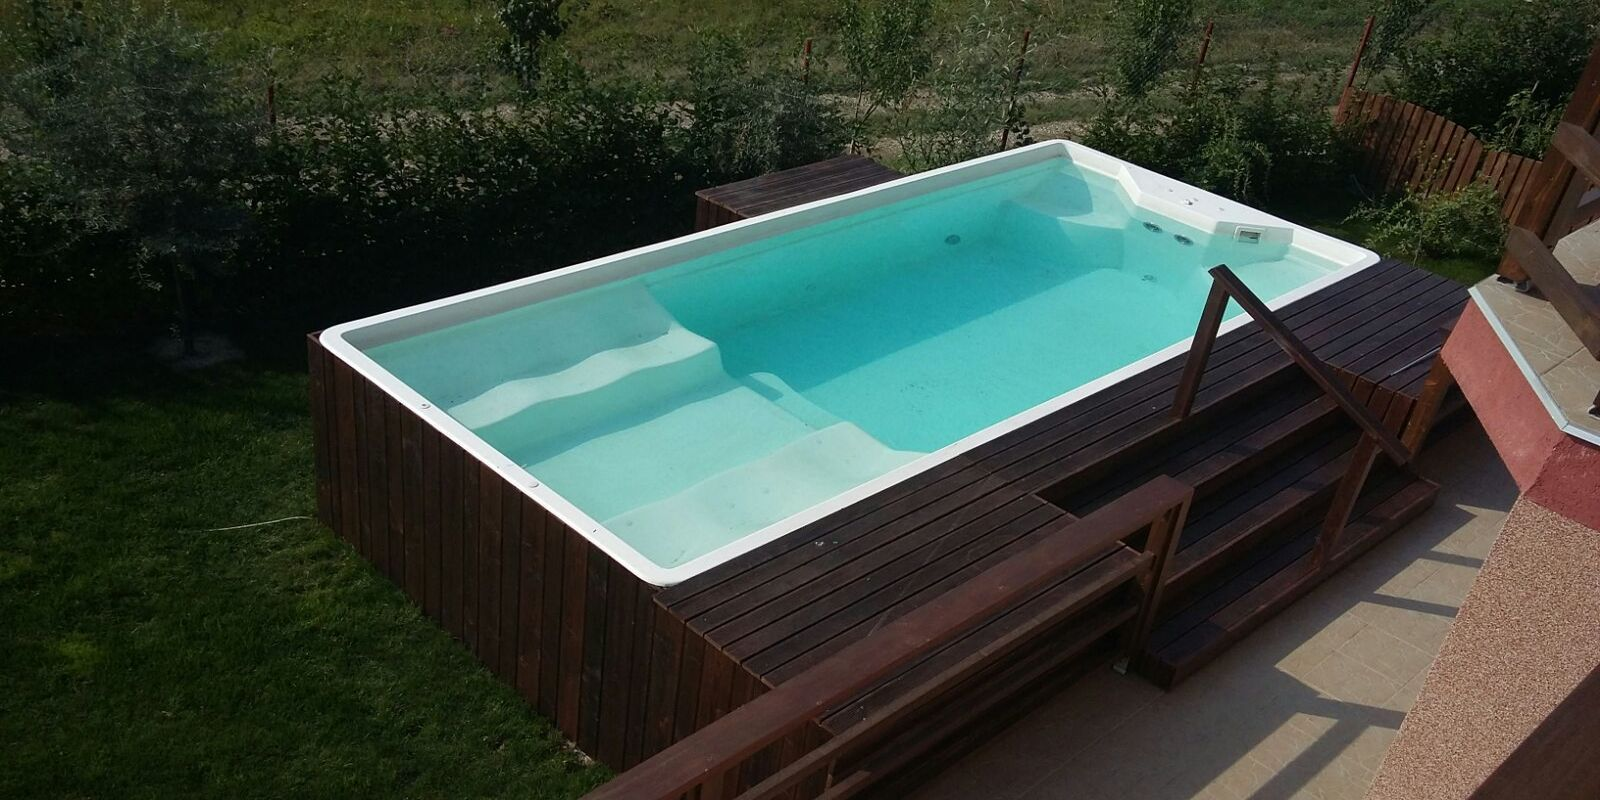 HYDROMASSAGE TUBS RELAXATION We are the first and only manufacturer ...